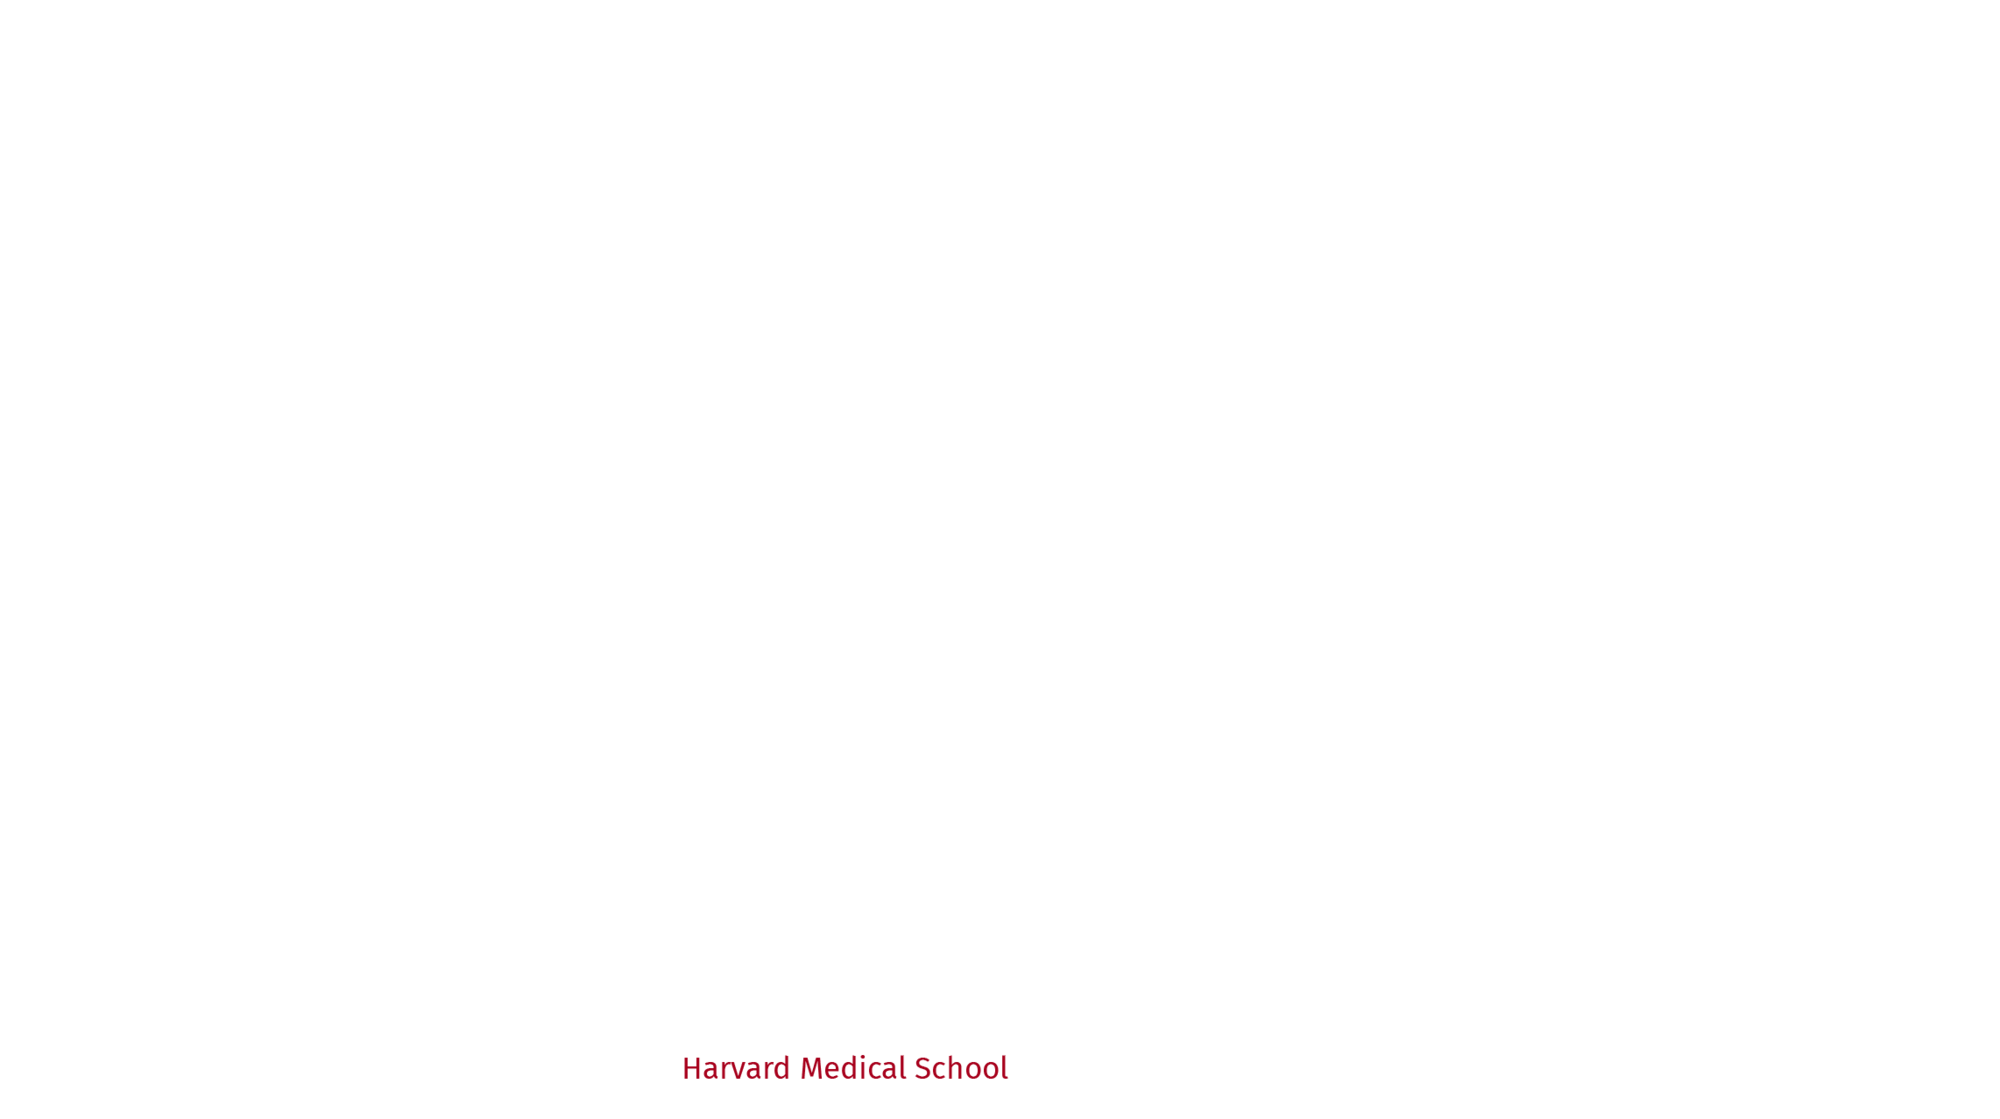 Harvard Medical School (texte)